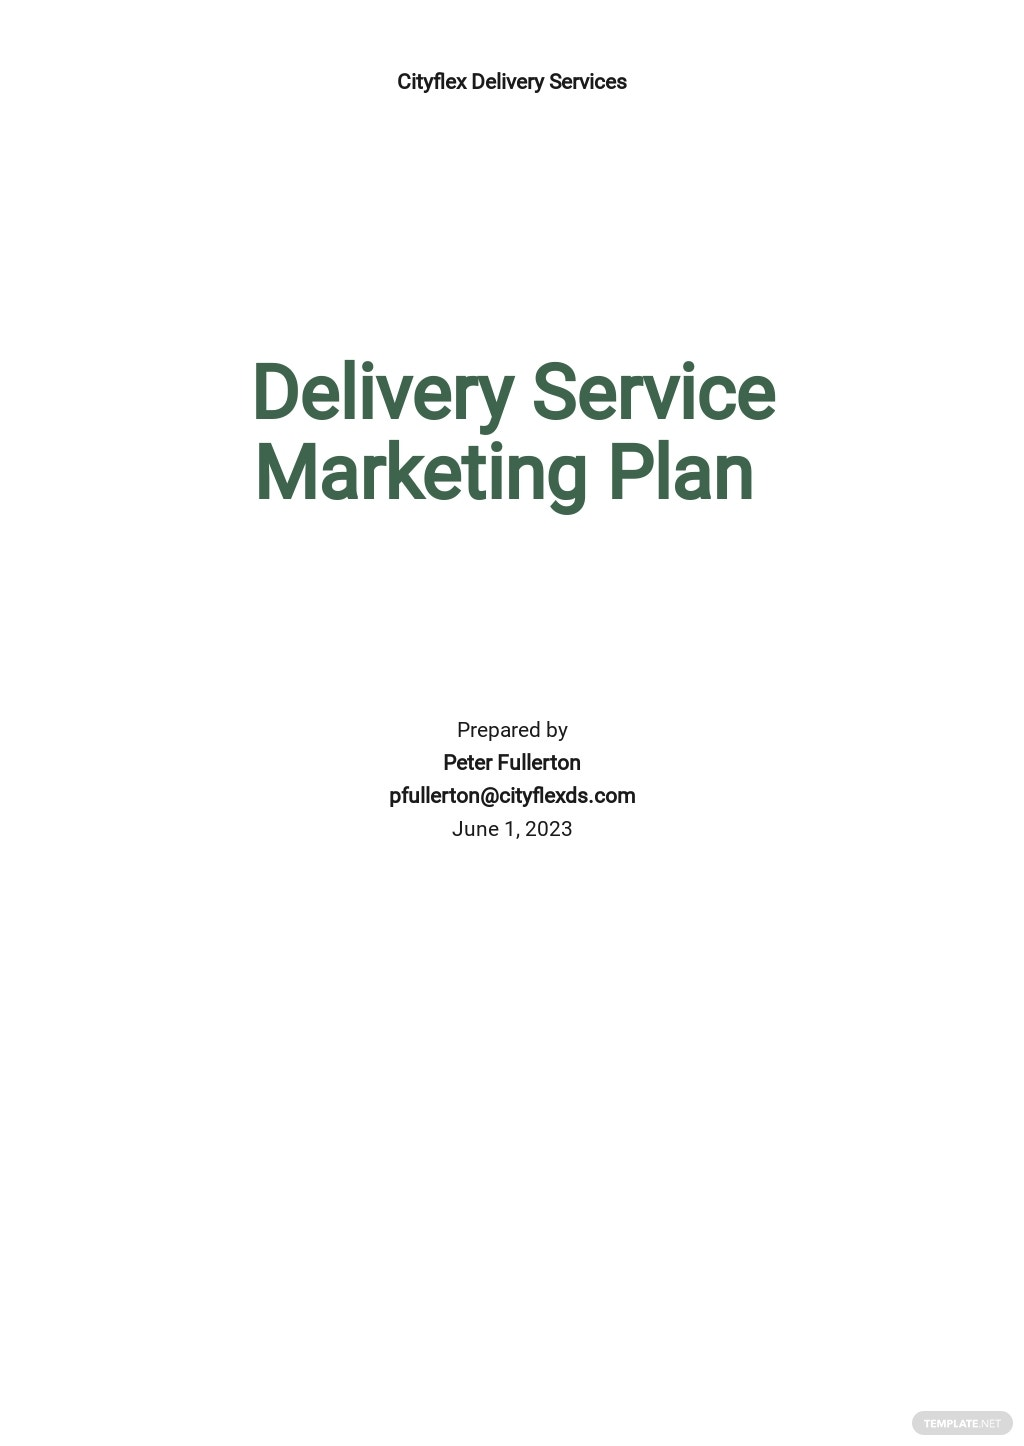 Delivery Service Marketing Plan Template